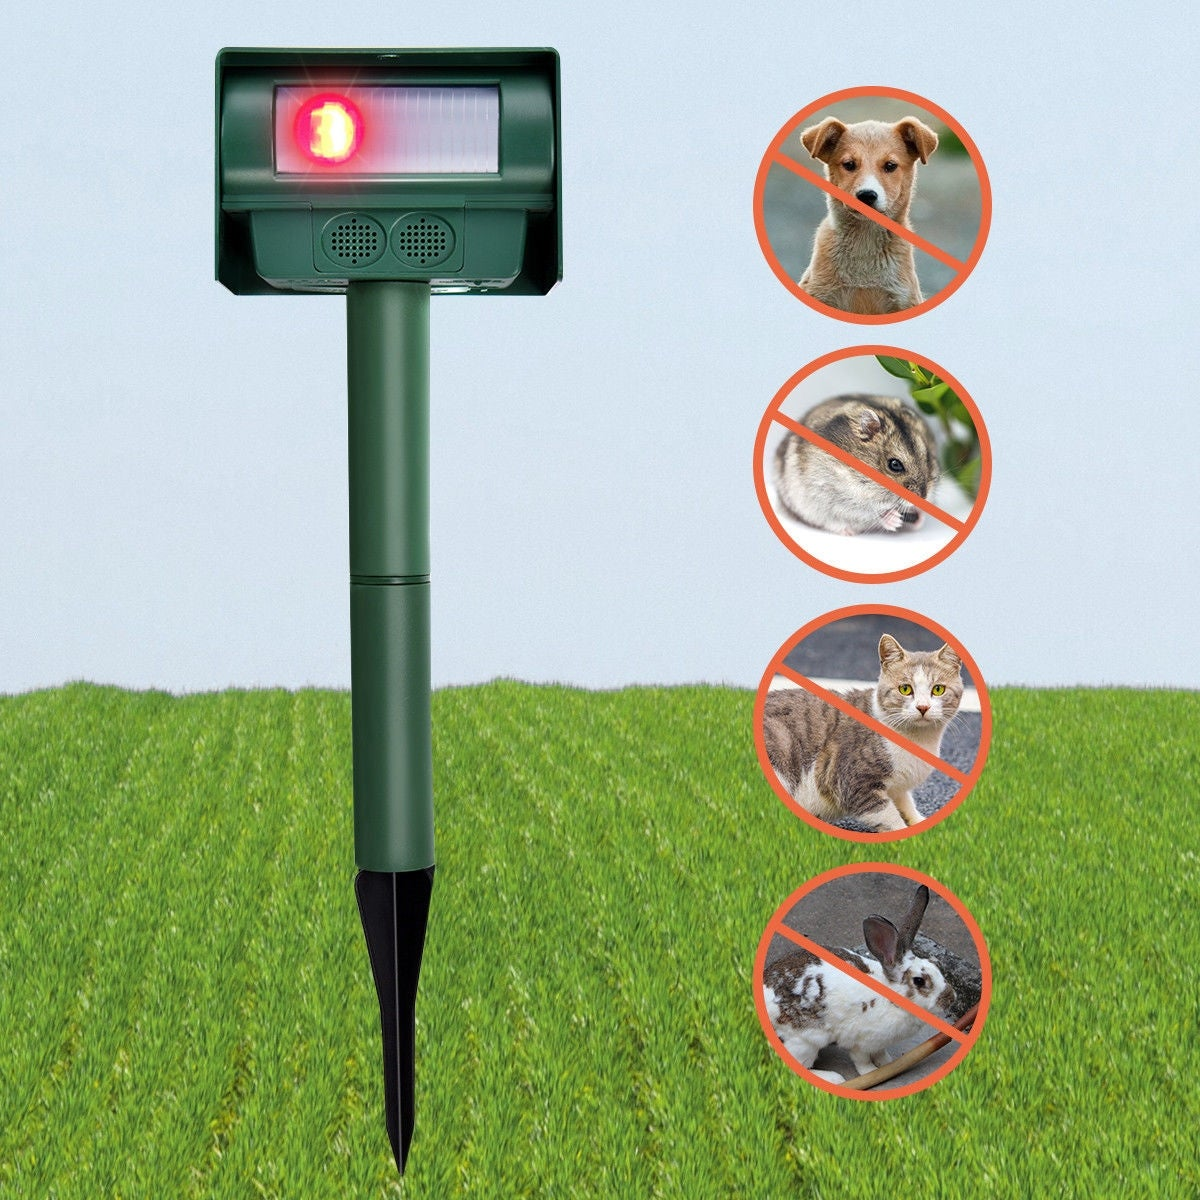 Shop Costway Solar Power Ultrasonic Pest Repeller Repellent Sensor Dog Circuit You Can Find One On This Detection Garden Green Free Shipping Orders Over 45 21009915